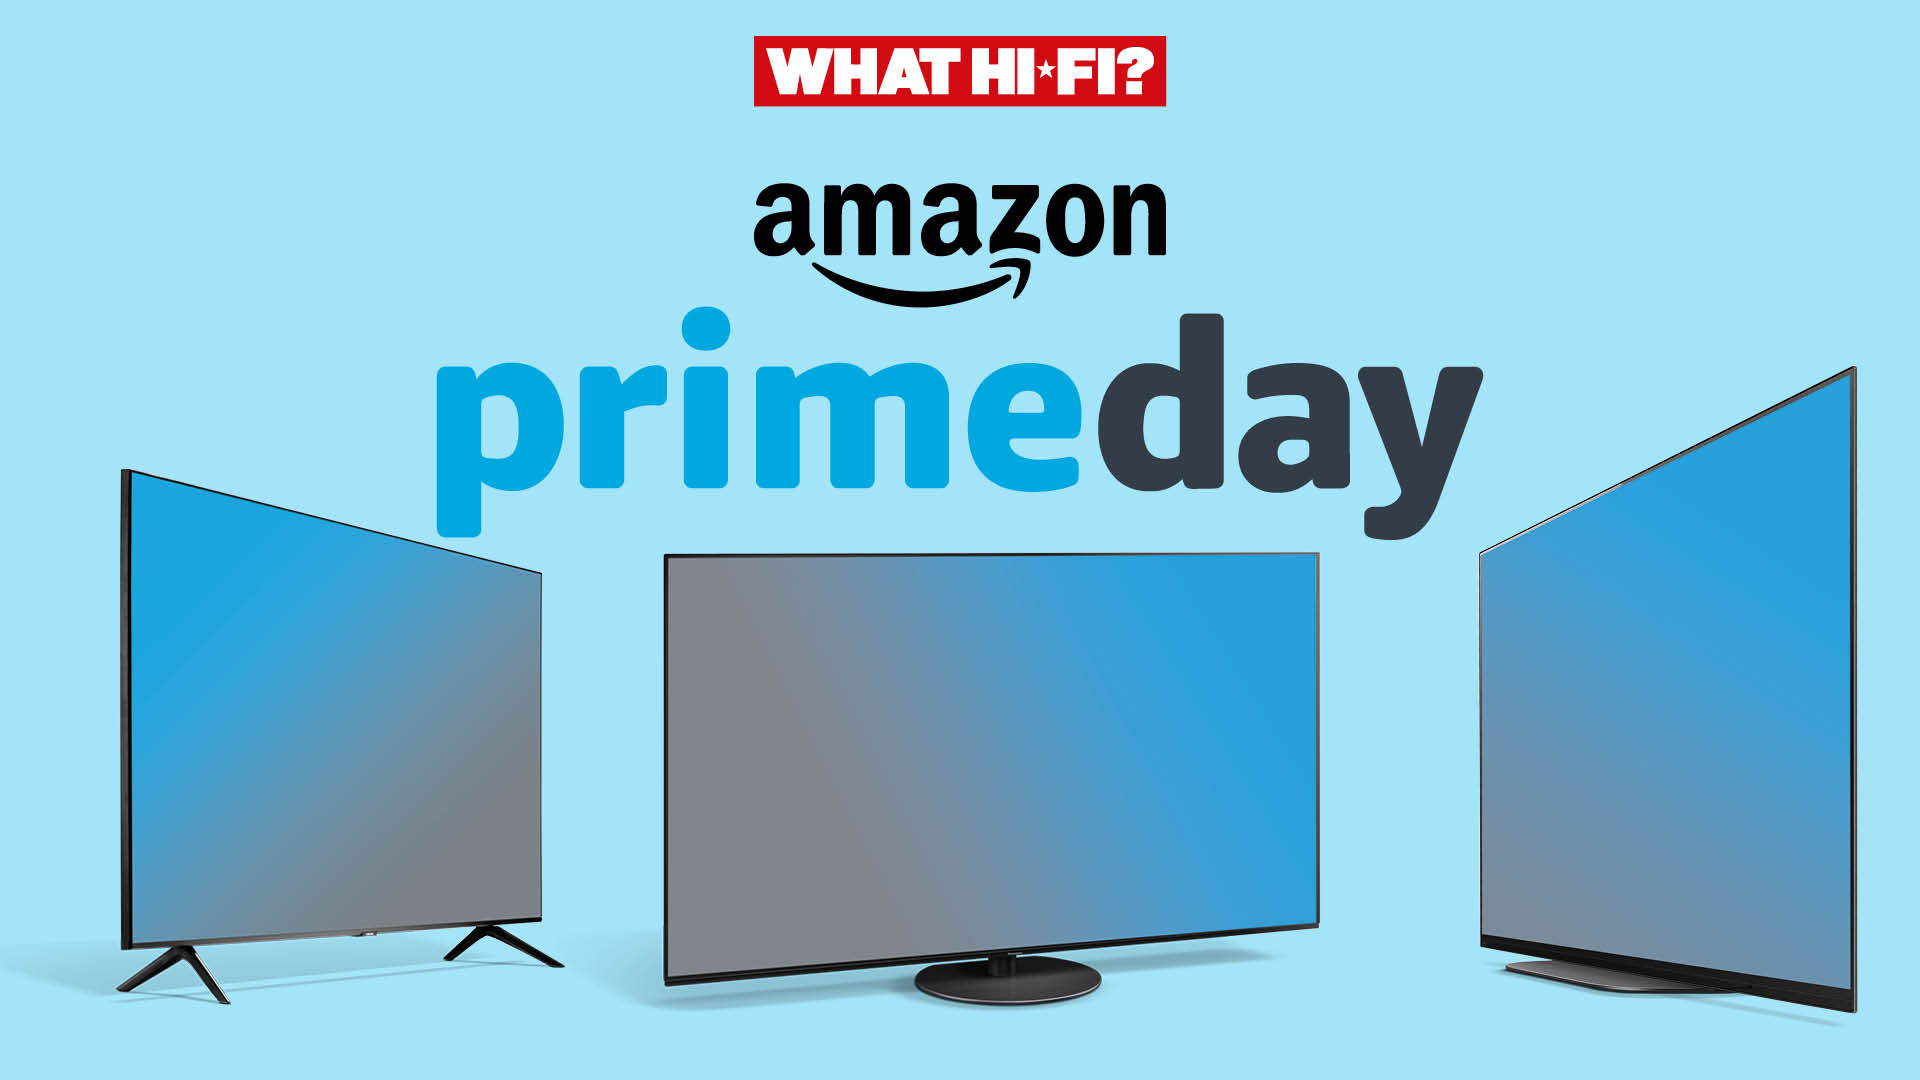 Best Amazon Prime Day Tv Deals 2021 Day 2 4k Oled Samsung Sony What Hi Fi